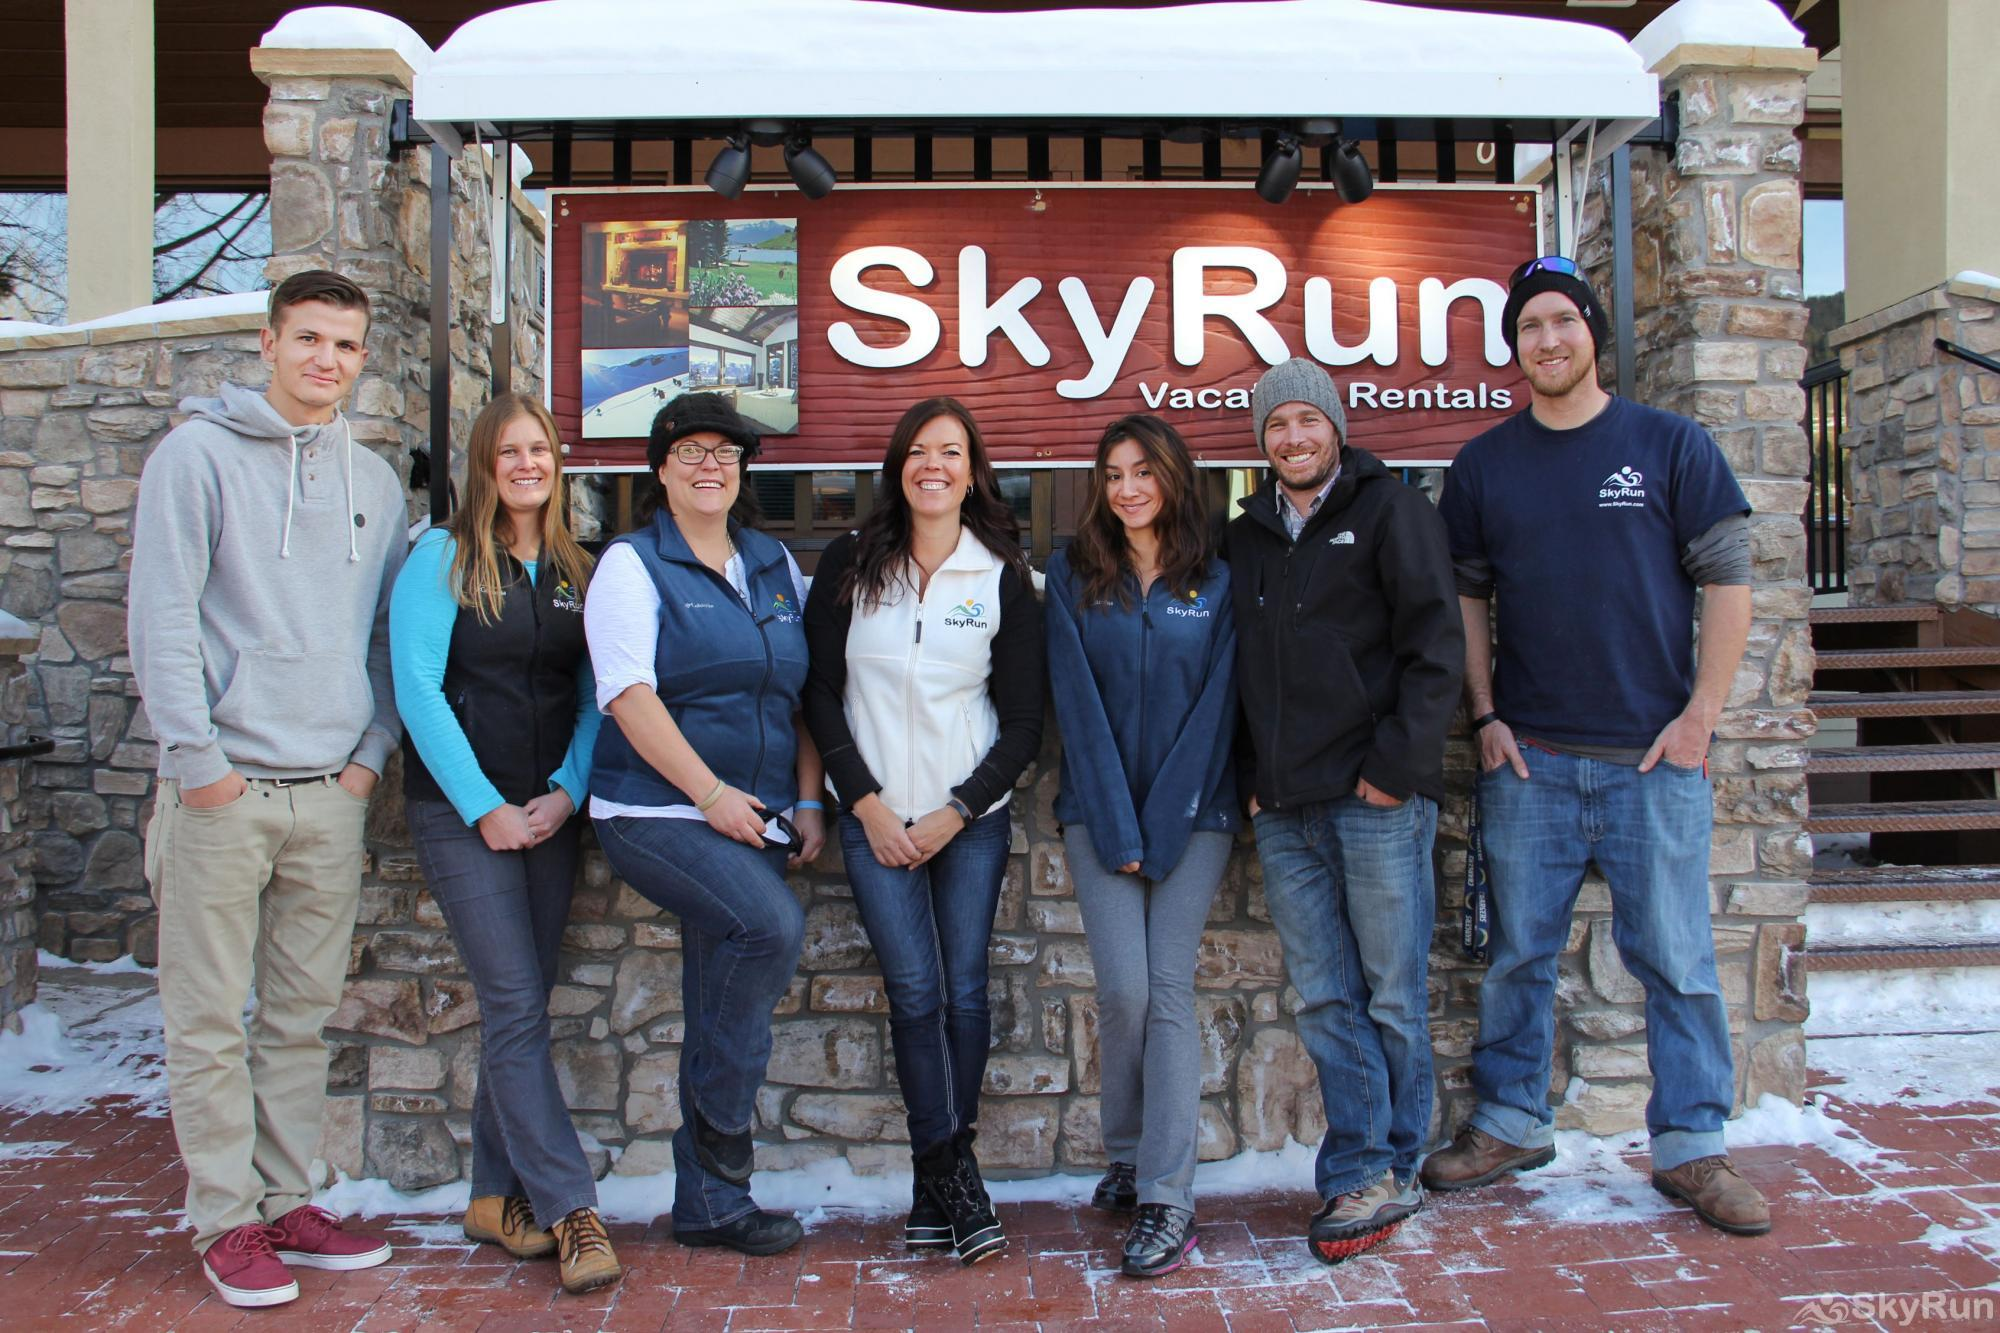 522 Watch Hill SkyRun's full time staff